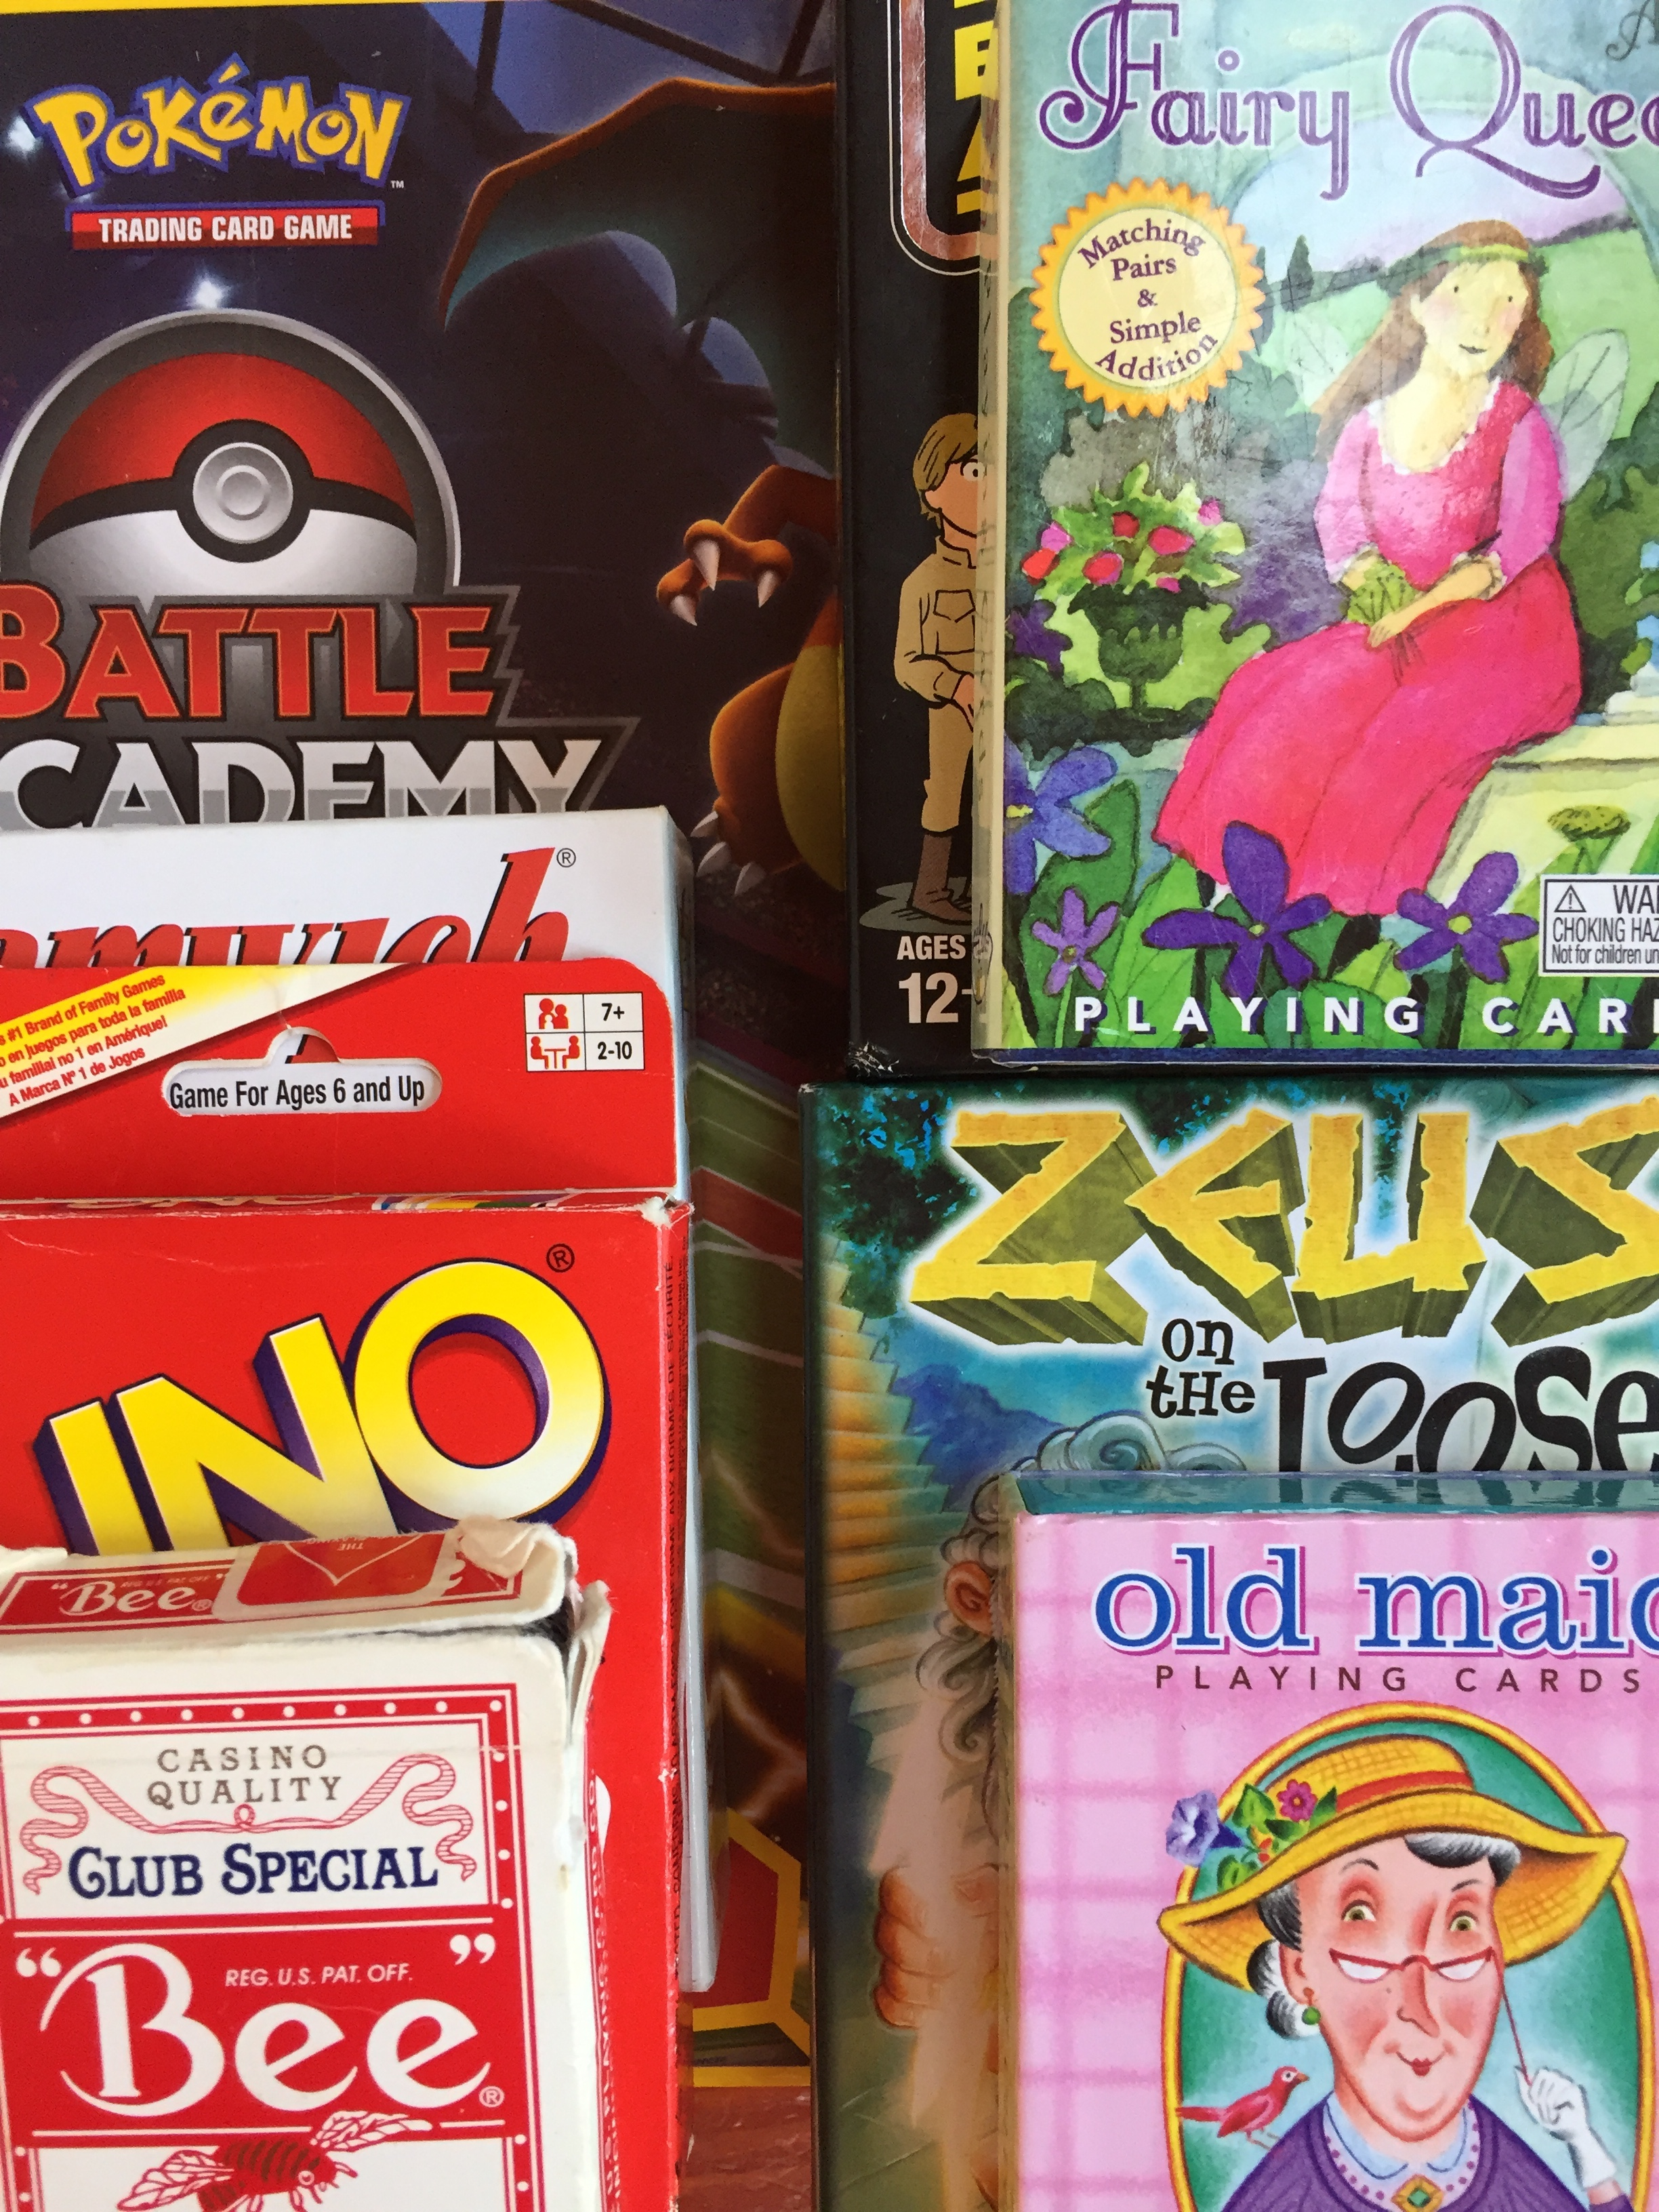 card games for kids Pokemon Fairy Queen Zeus on the Loose Uno Old Maid